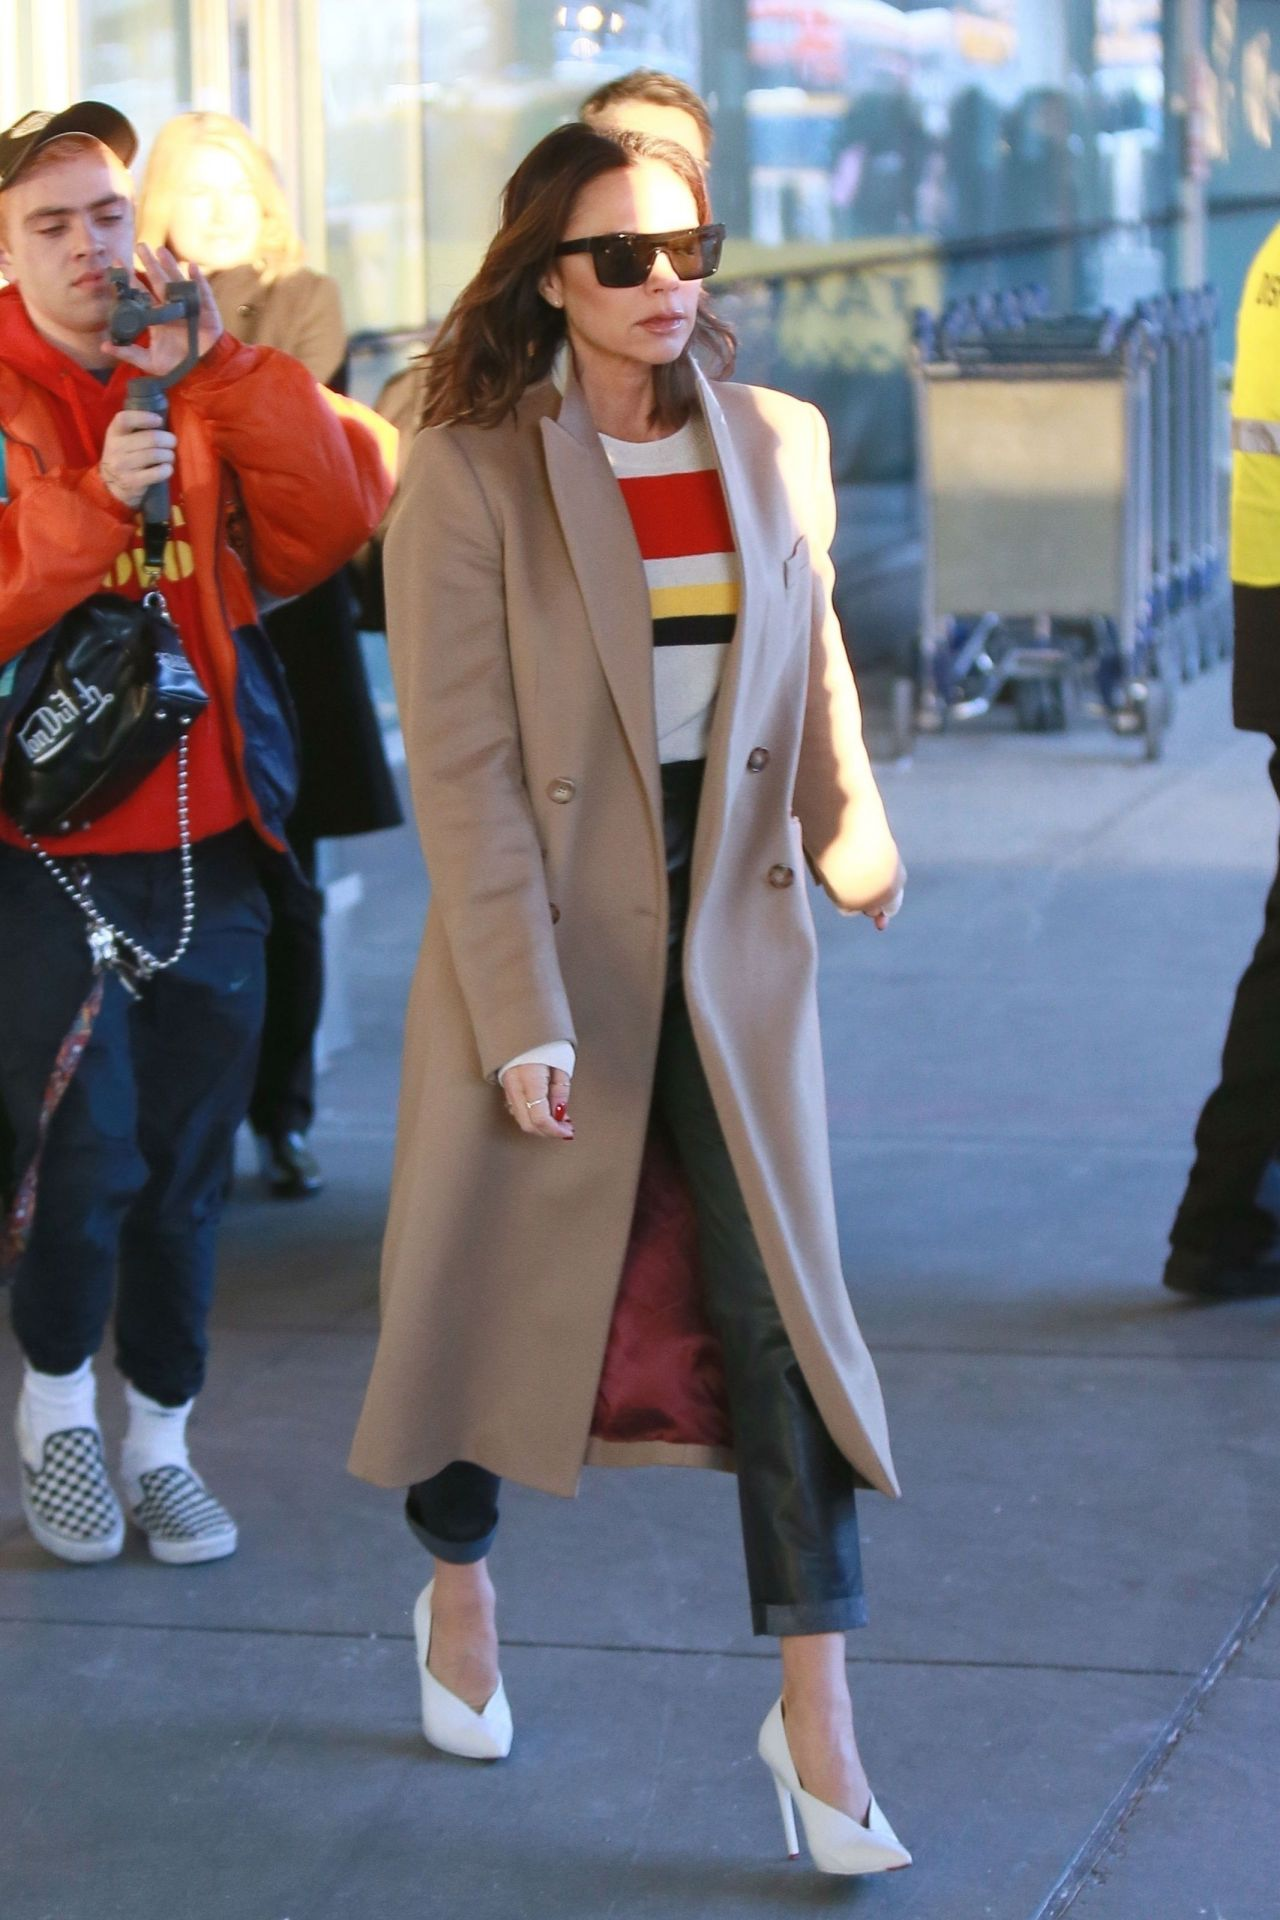 Victoria Beckham At Jfk Airport In Ny 01 21 2019